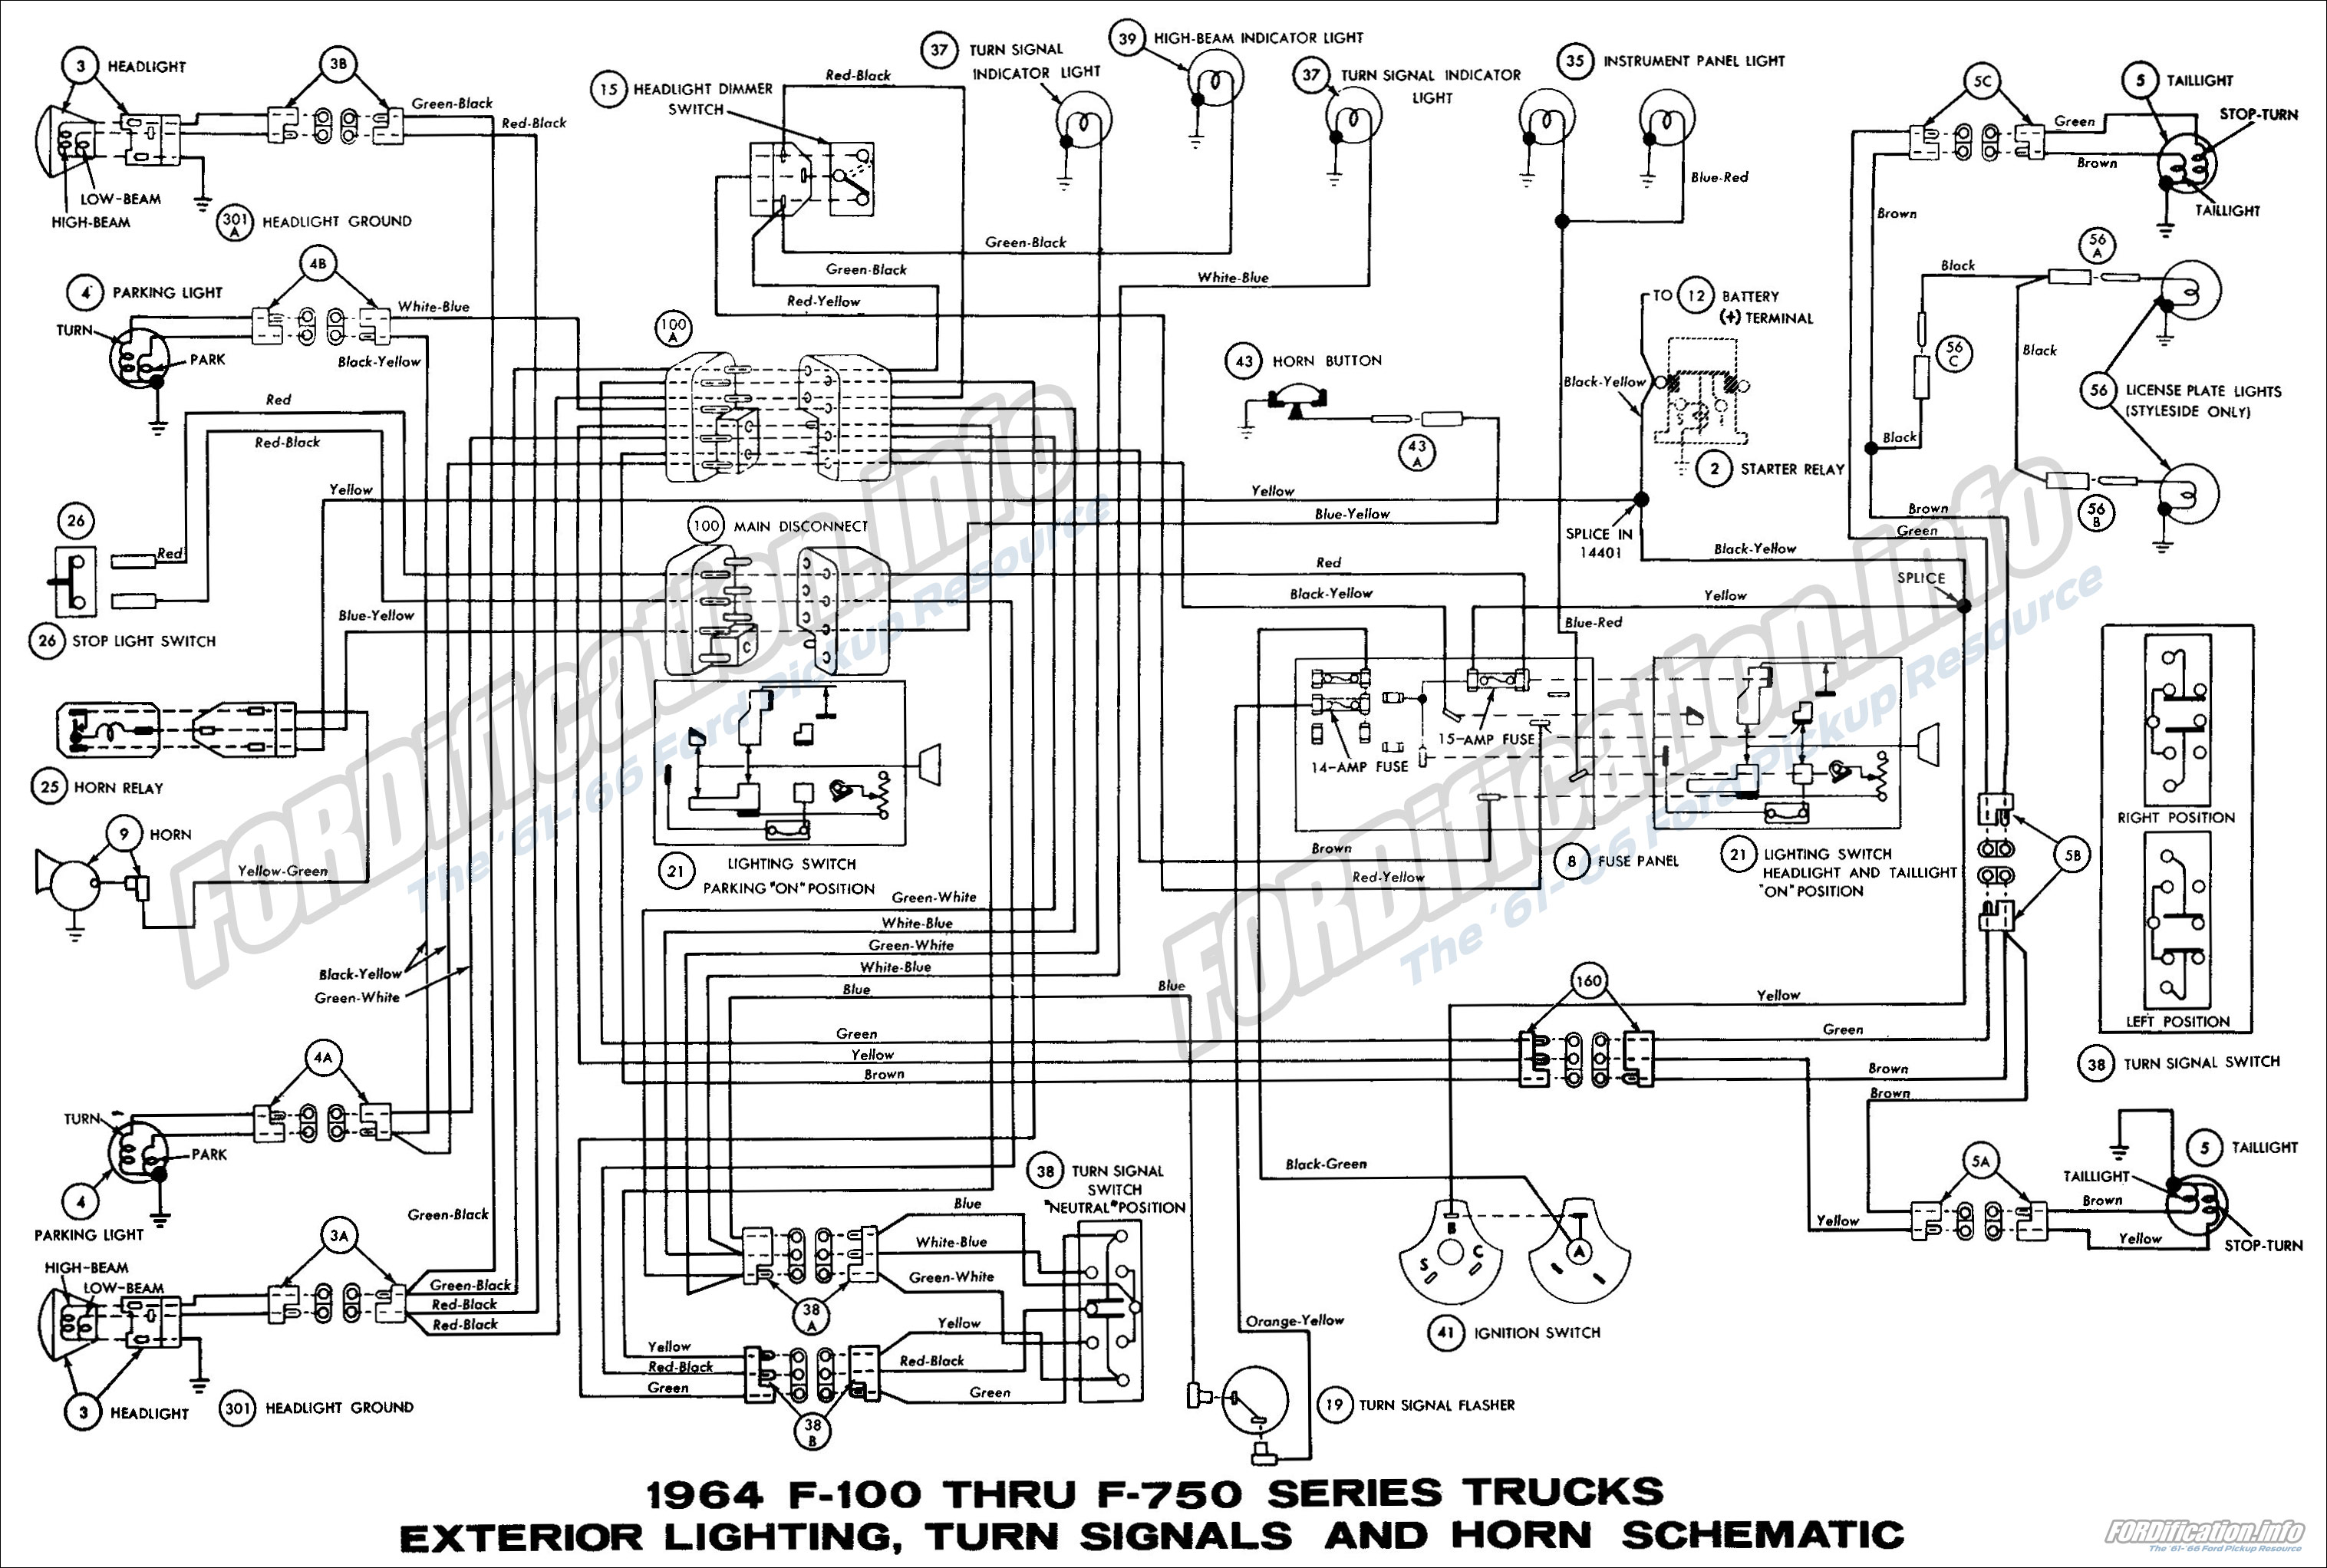 1964_09 1964 f100 wiring diagram 1965 f100 wiring diagram \u2022 free wiring fordification wiring diagram at gsmportal.co